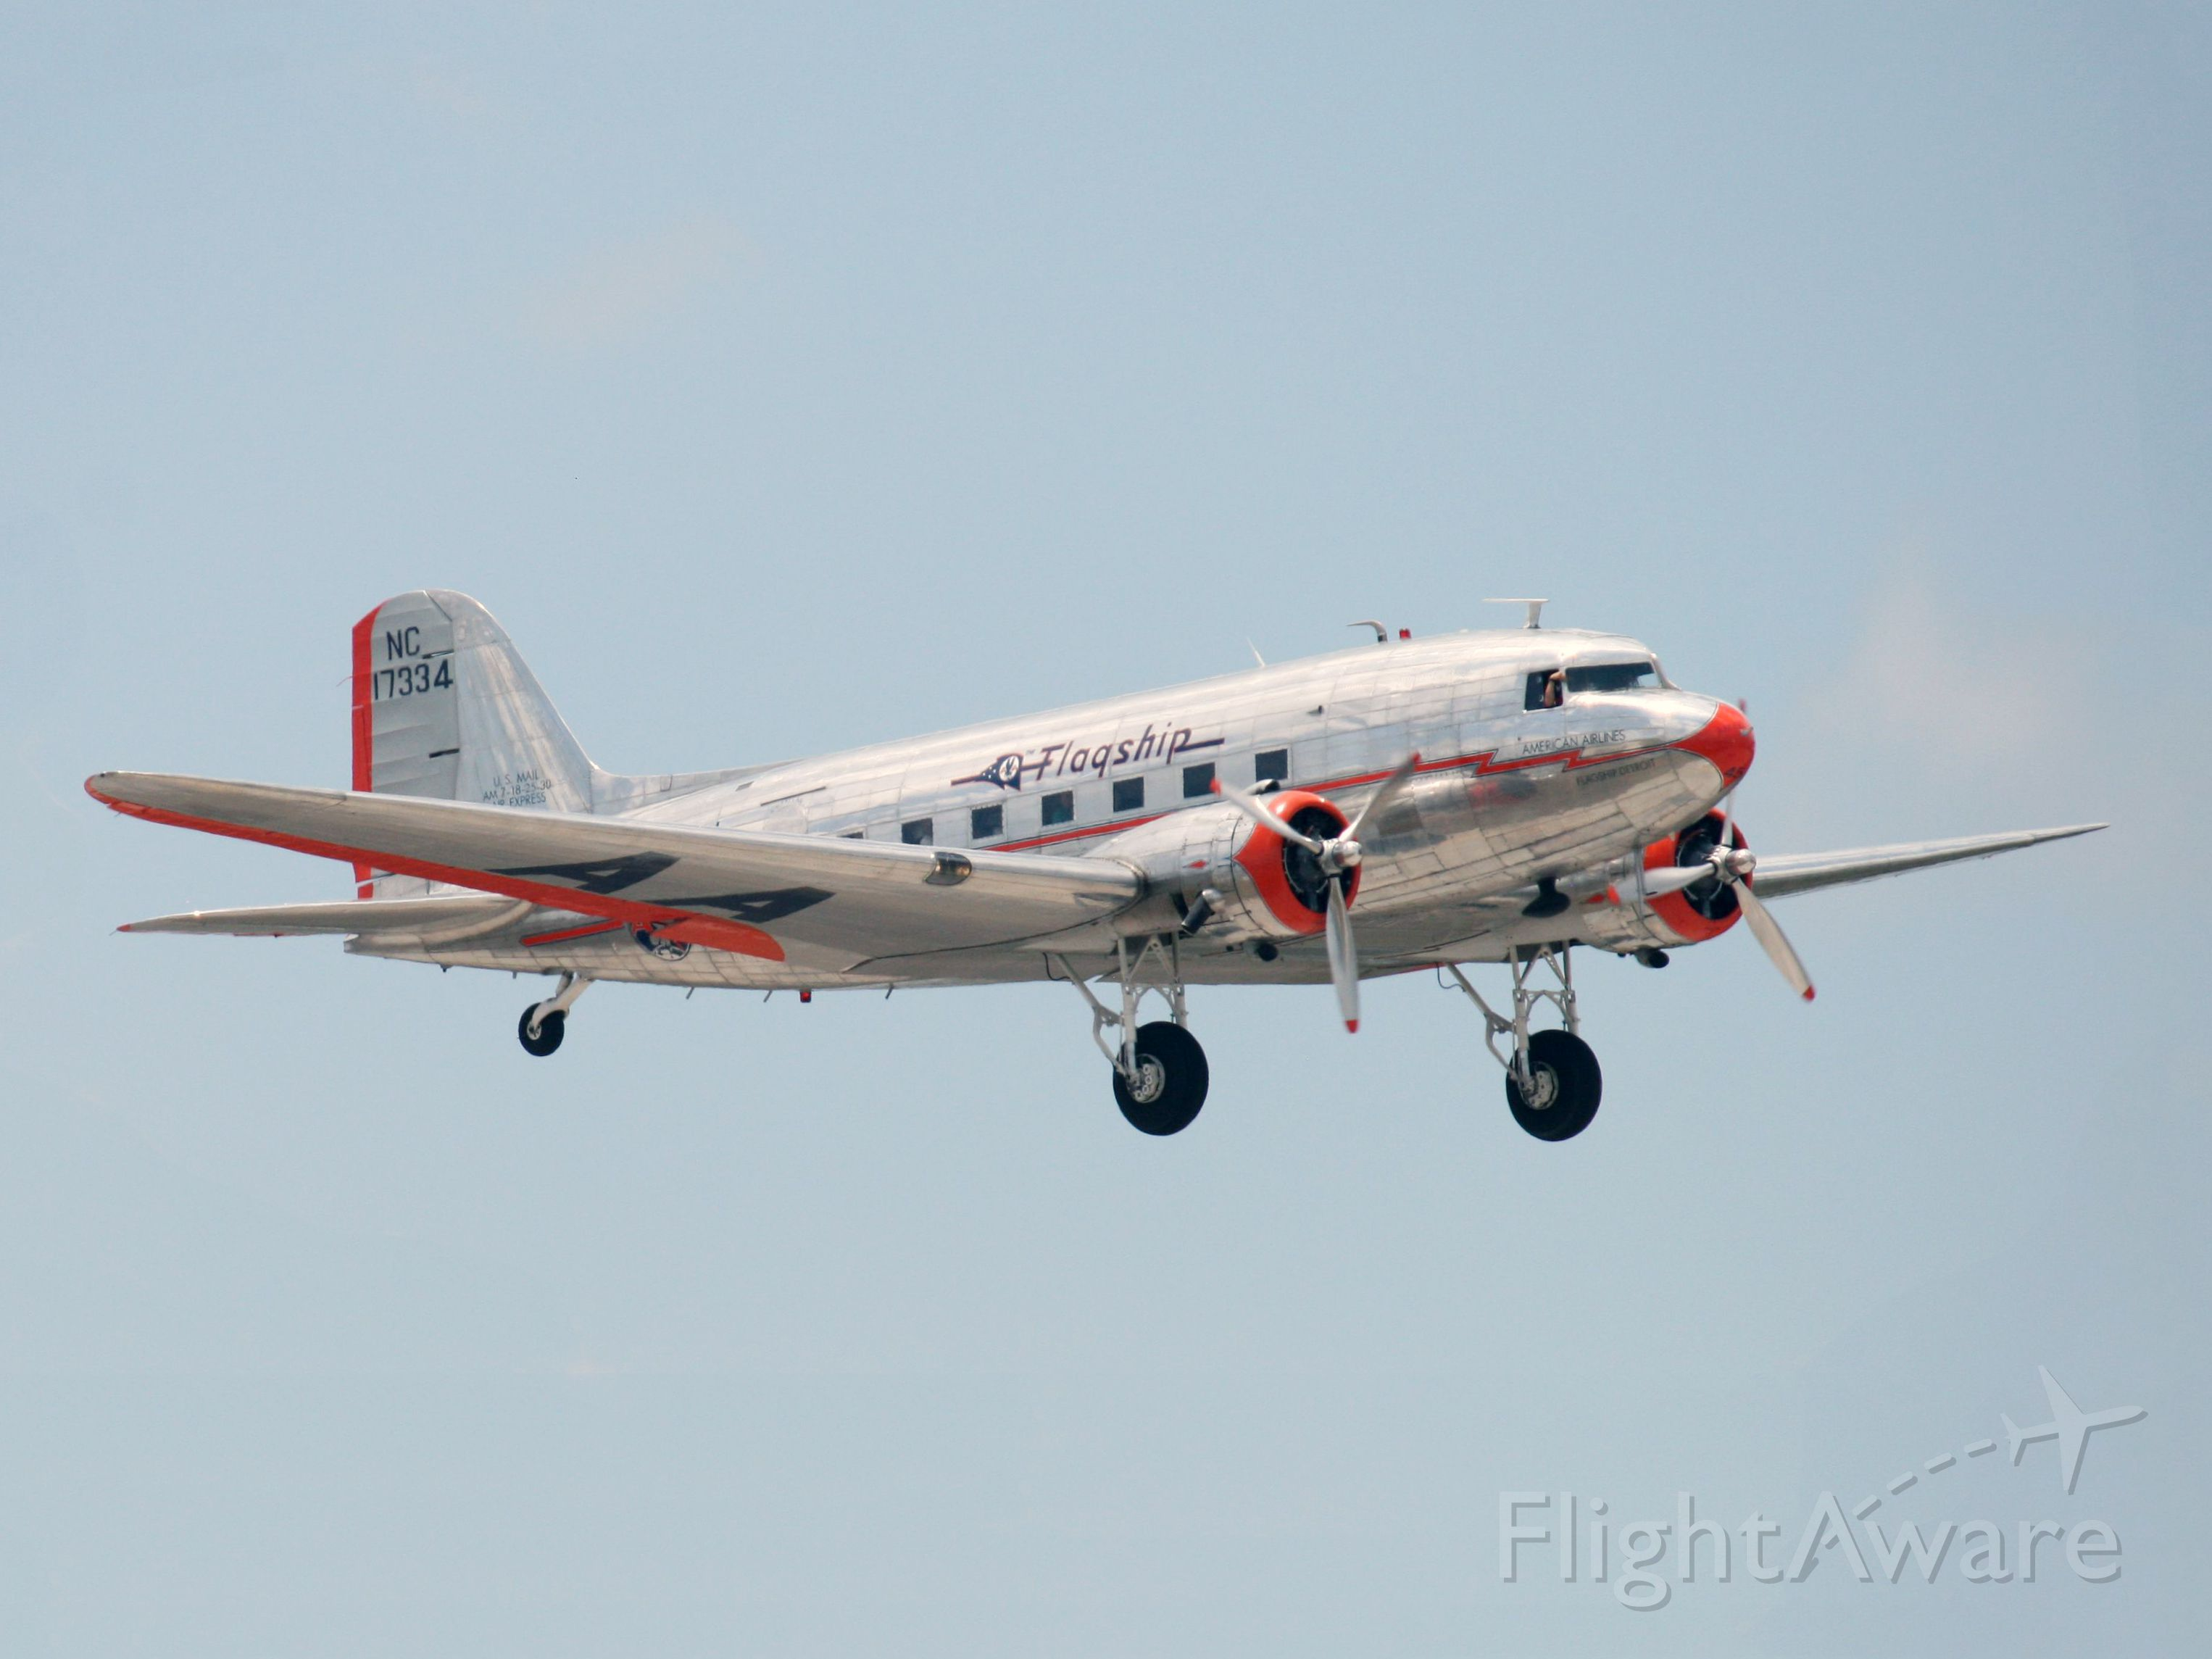 Douglas DC-3 (NAC17334) - This is the oldest operating DC3 (cn 1920). Immaculate condition. Raw photo courtesy of my friend LEARJETMIAMI - thank you and gracias!